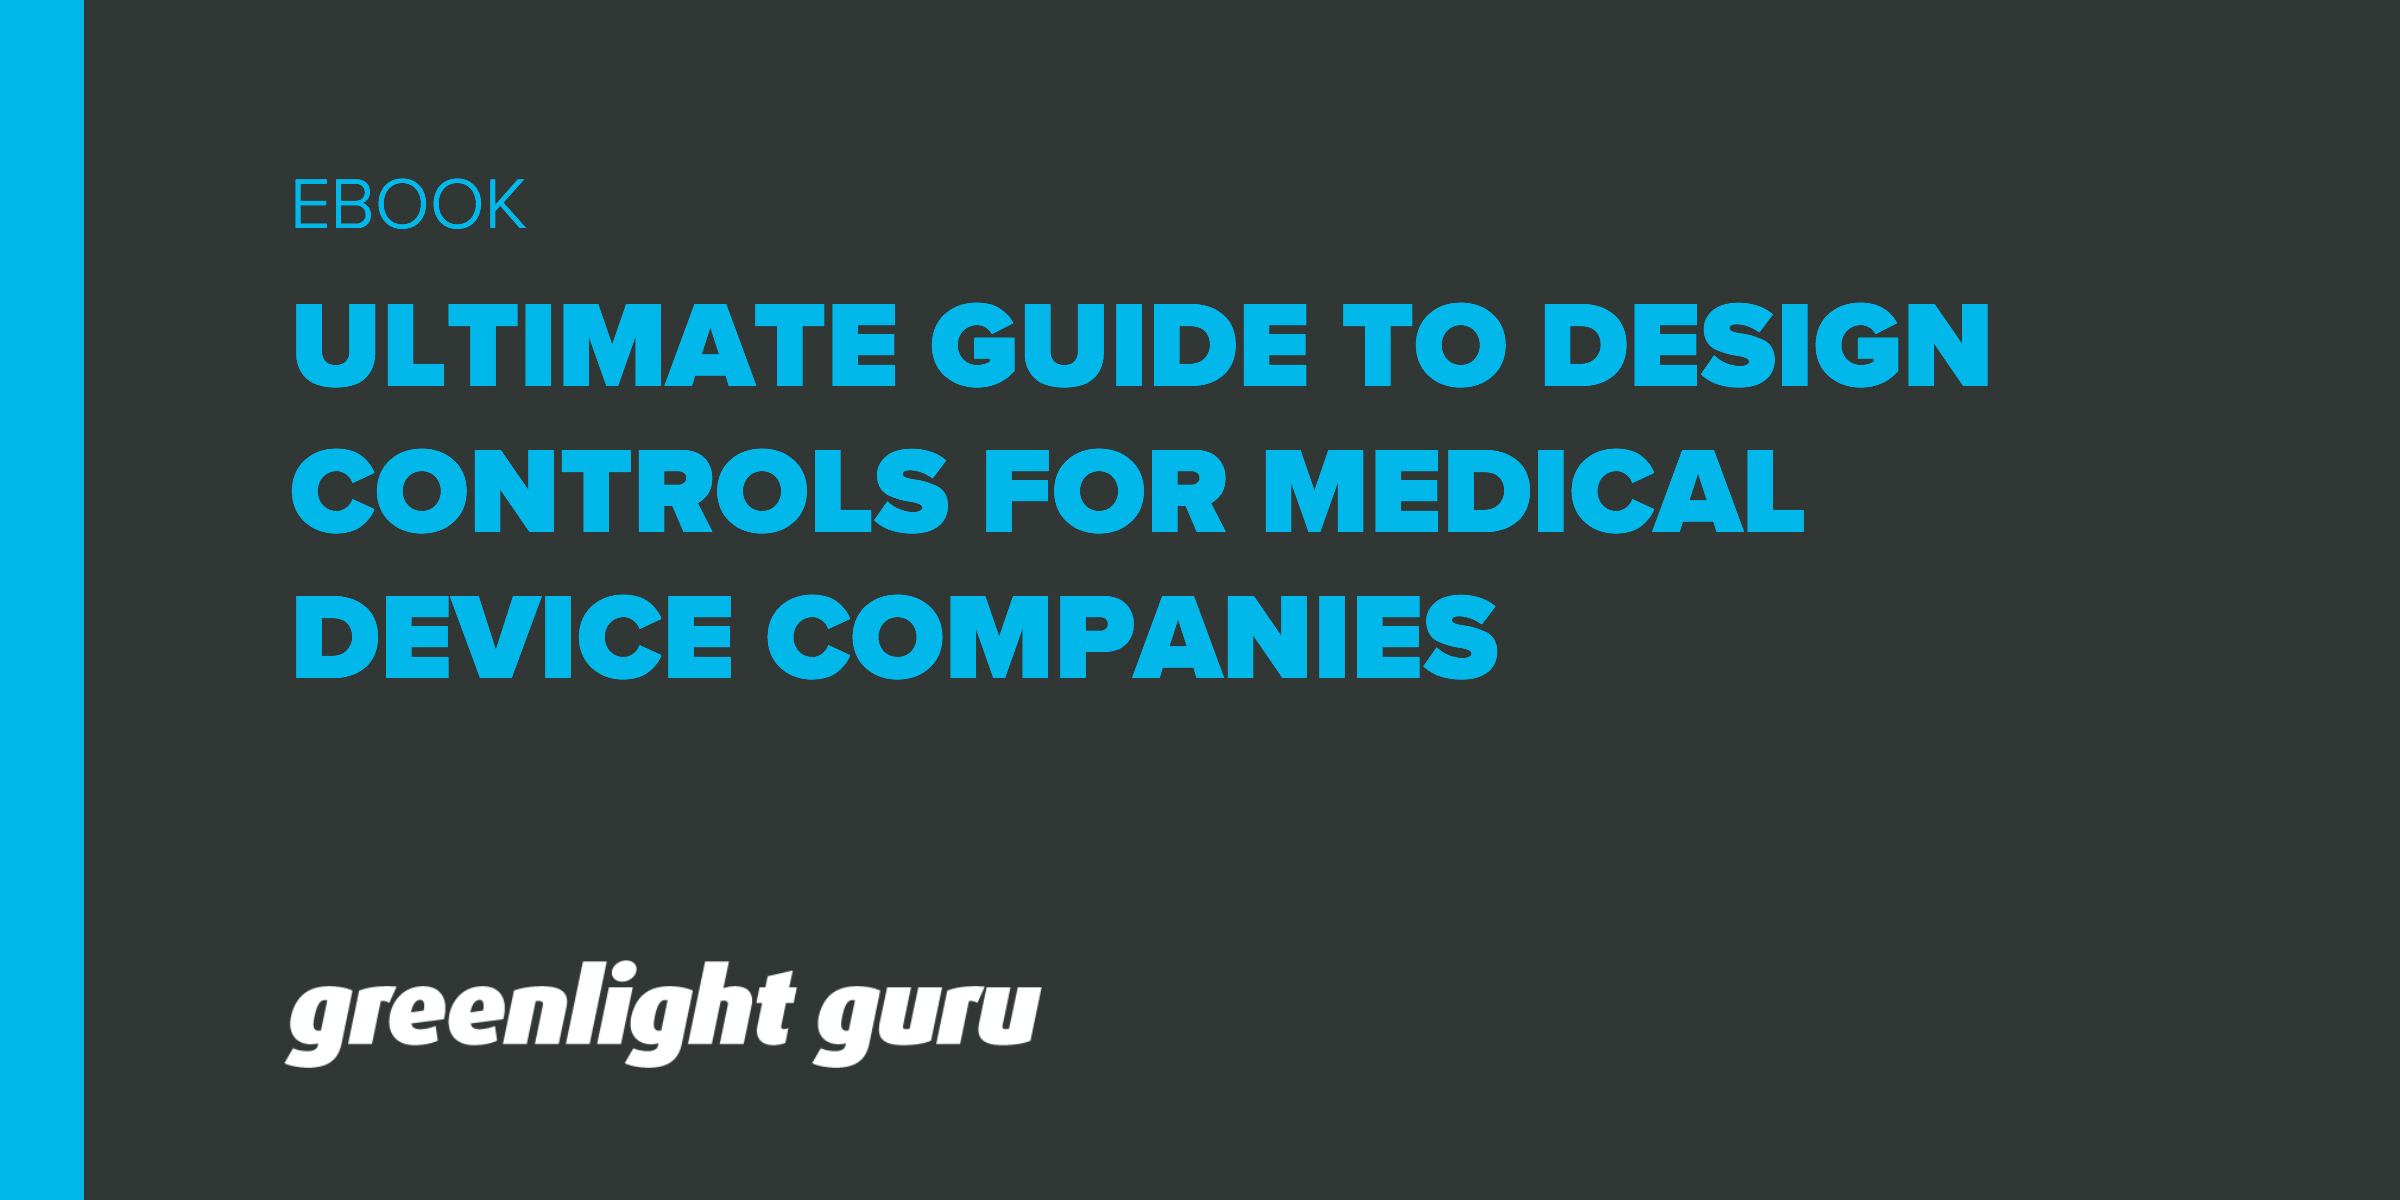 The Ultimate Guide To Design Controls For Medical Device Companies - Featured Image